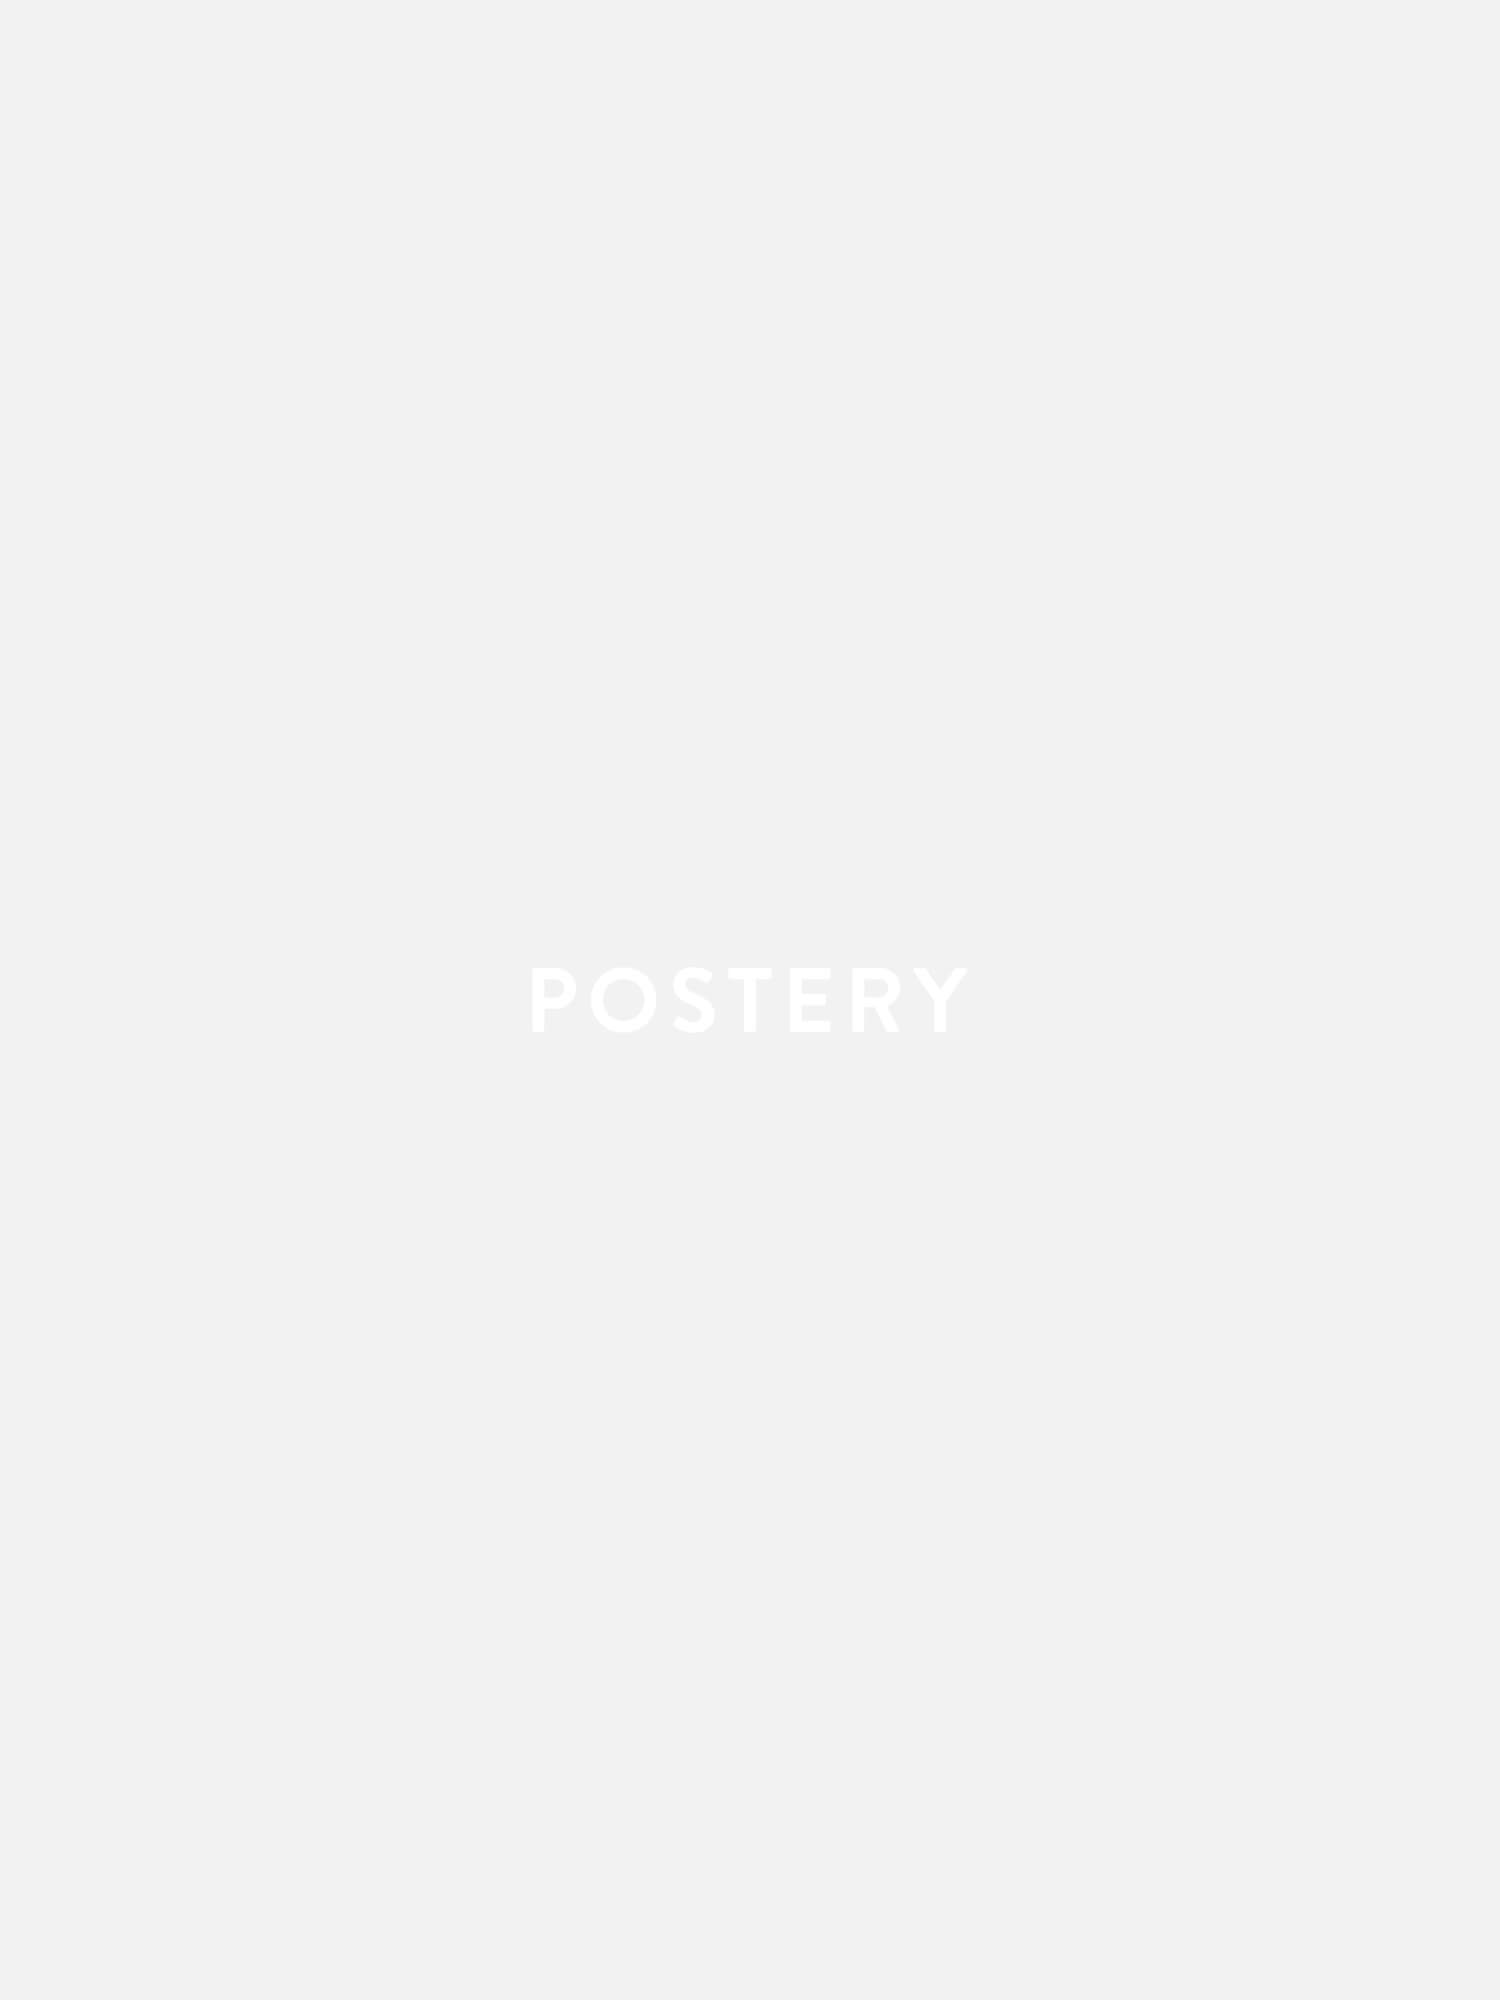 Vintage Pineapple Poster